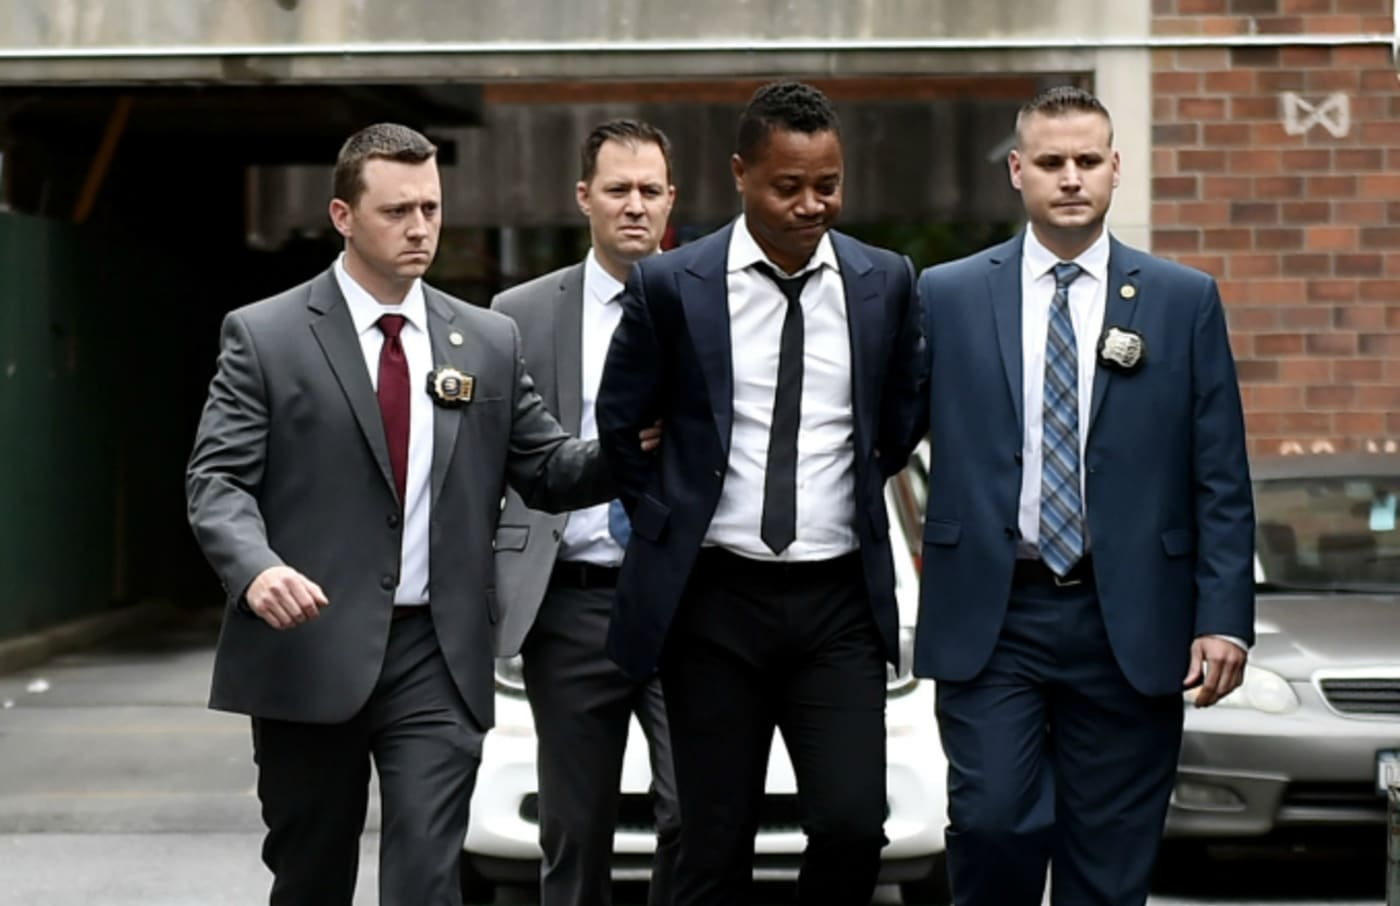 Actor Cuba Gooding Jr. is seen after turning himself in to the New York police